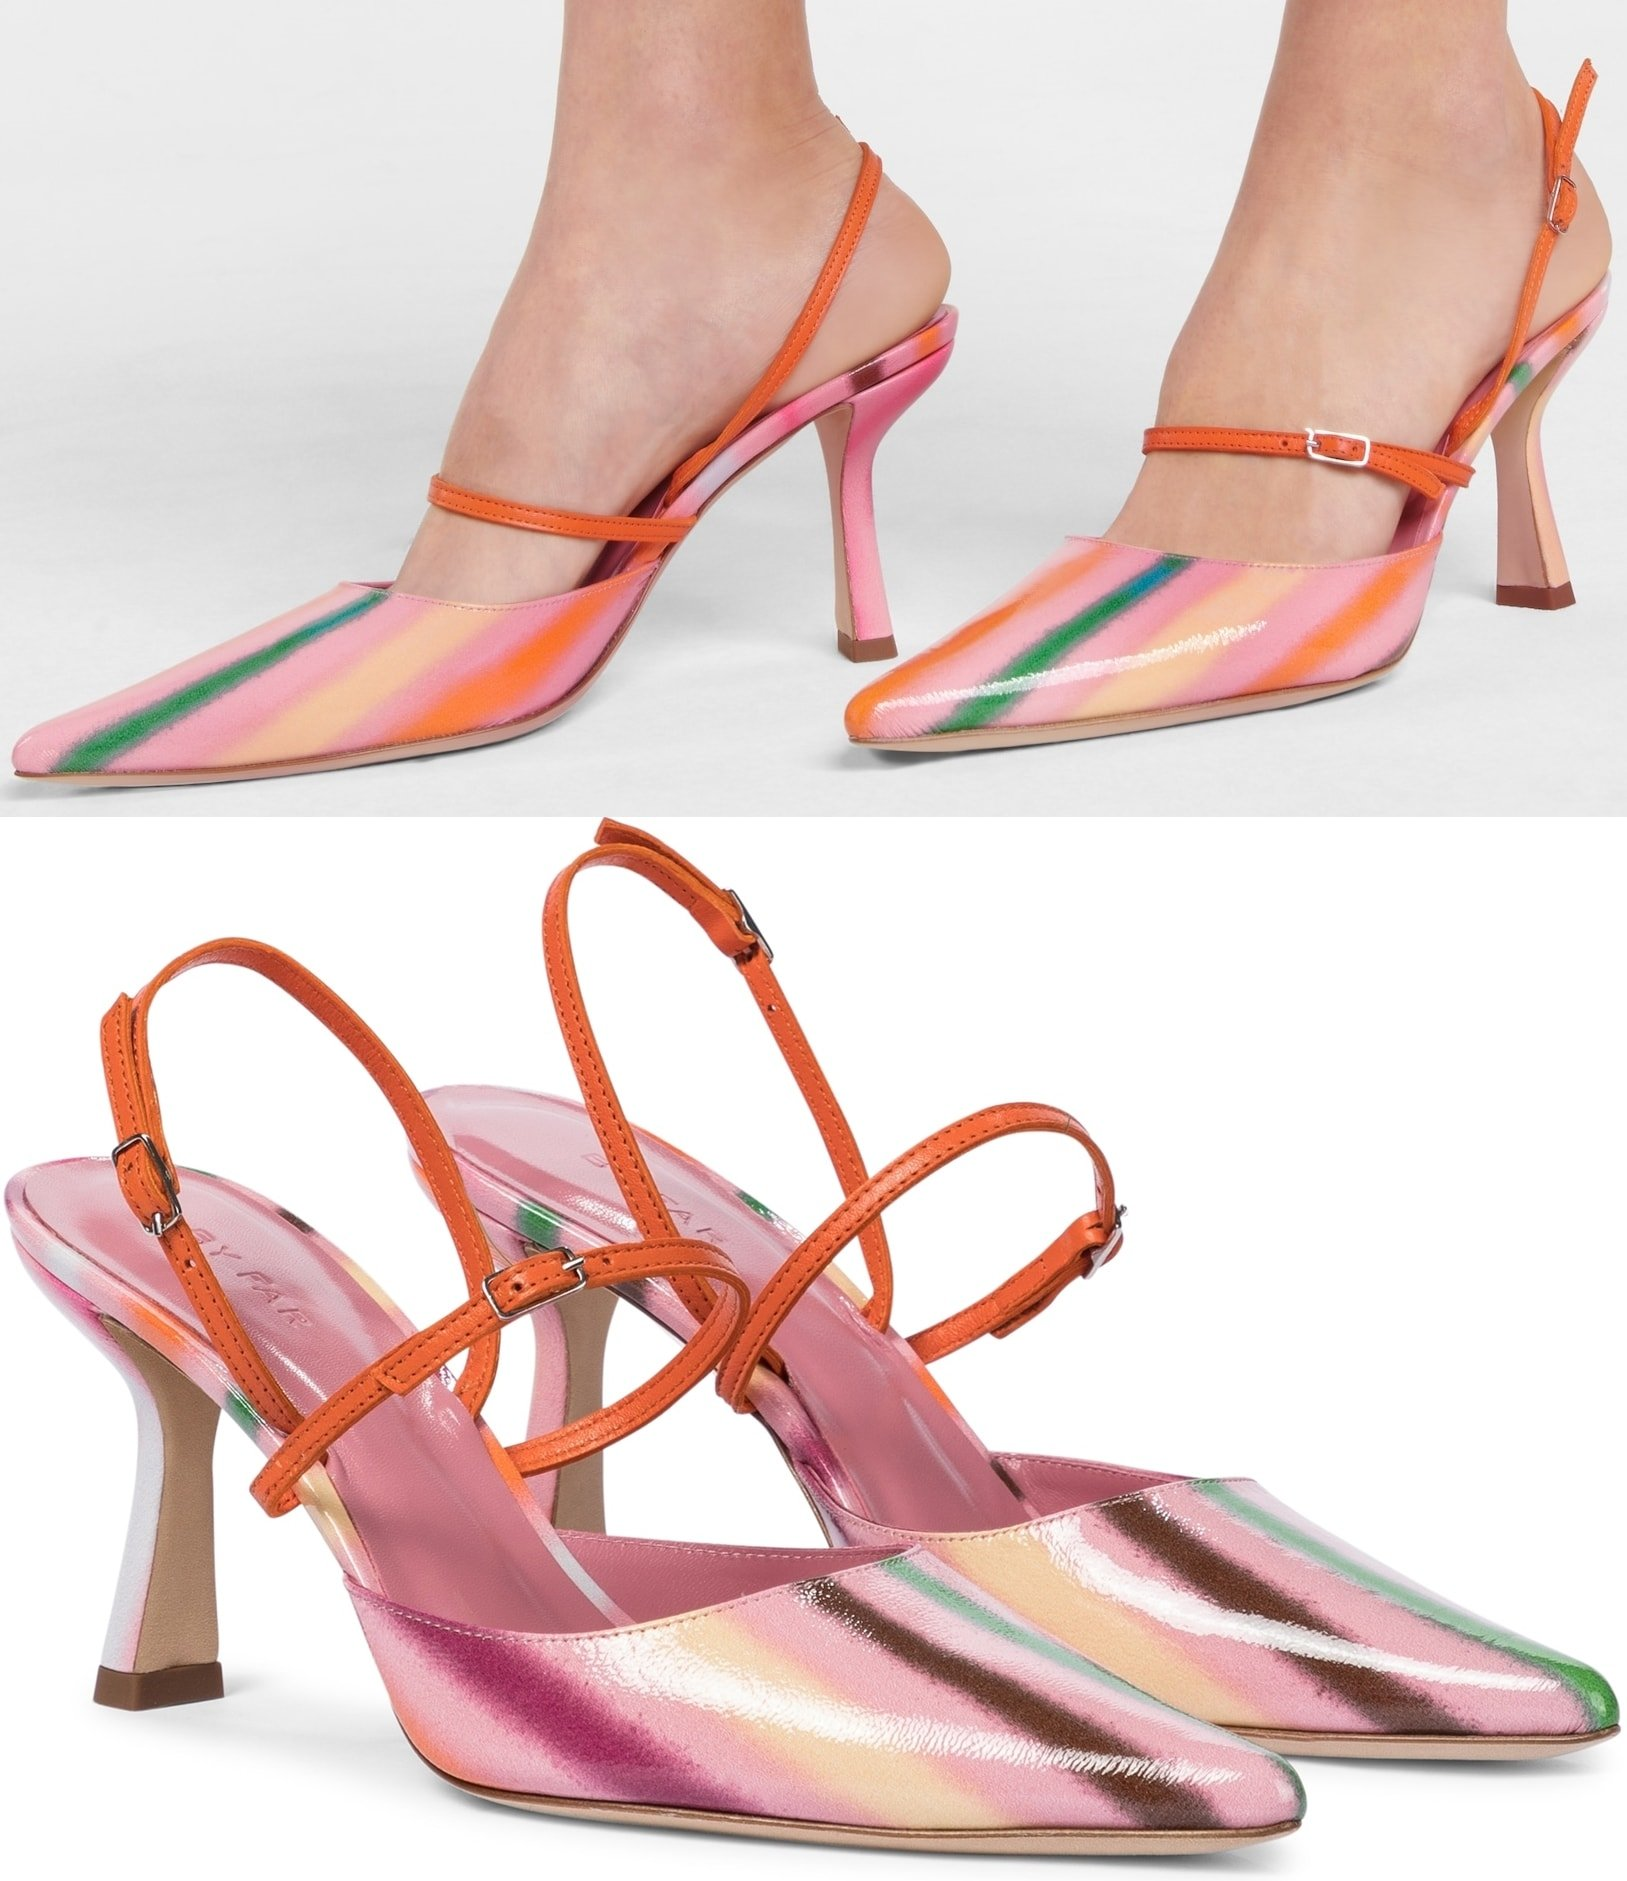 Made from glossy leather in pink candy stripes with orange straps, this pump has a pointed toe and a sculptural kitten heel